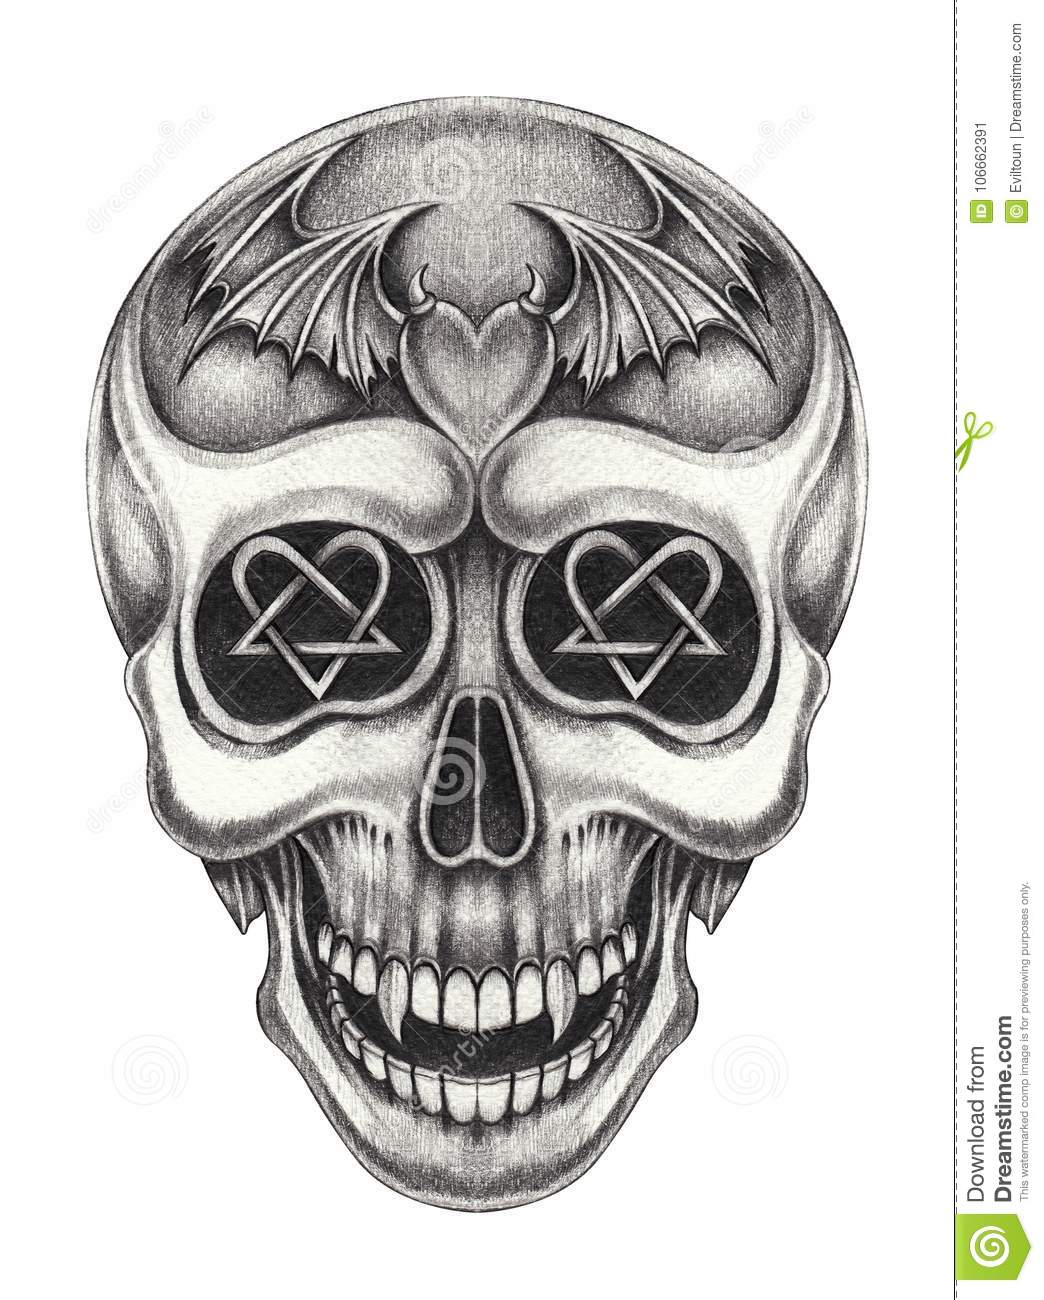 Art vampire skull tattoo stock illustratie illustratie for Vampire skull tattoo